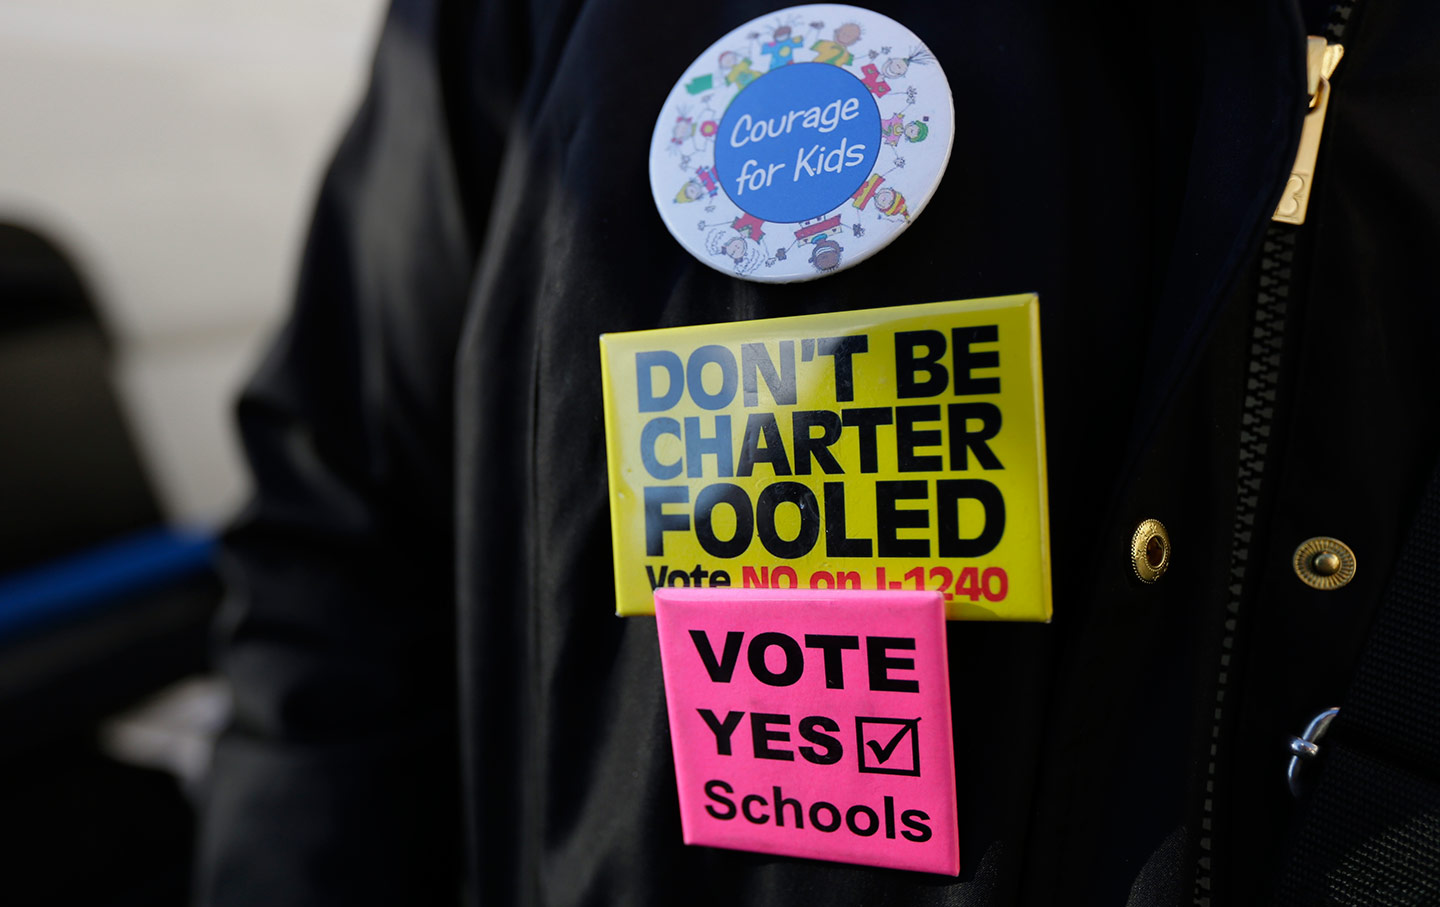 Buttons opposing charter schools